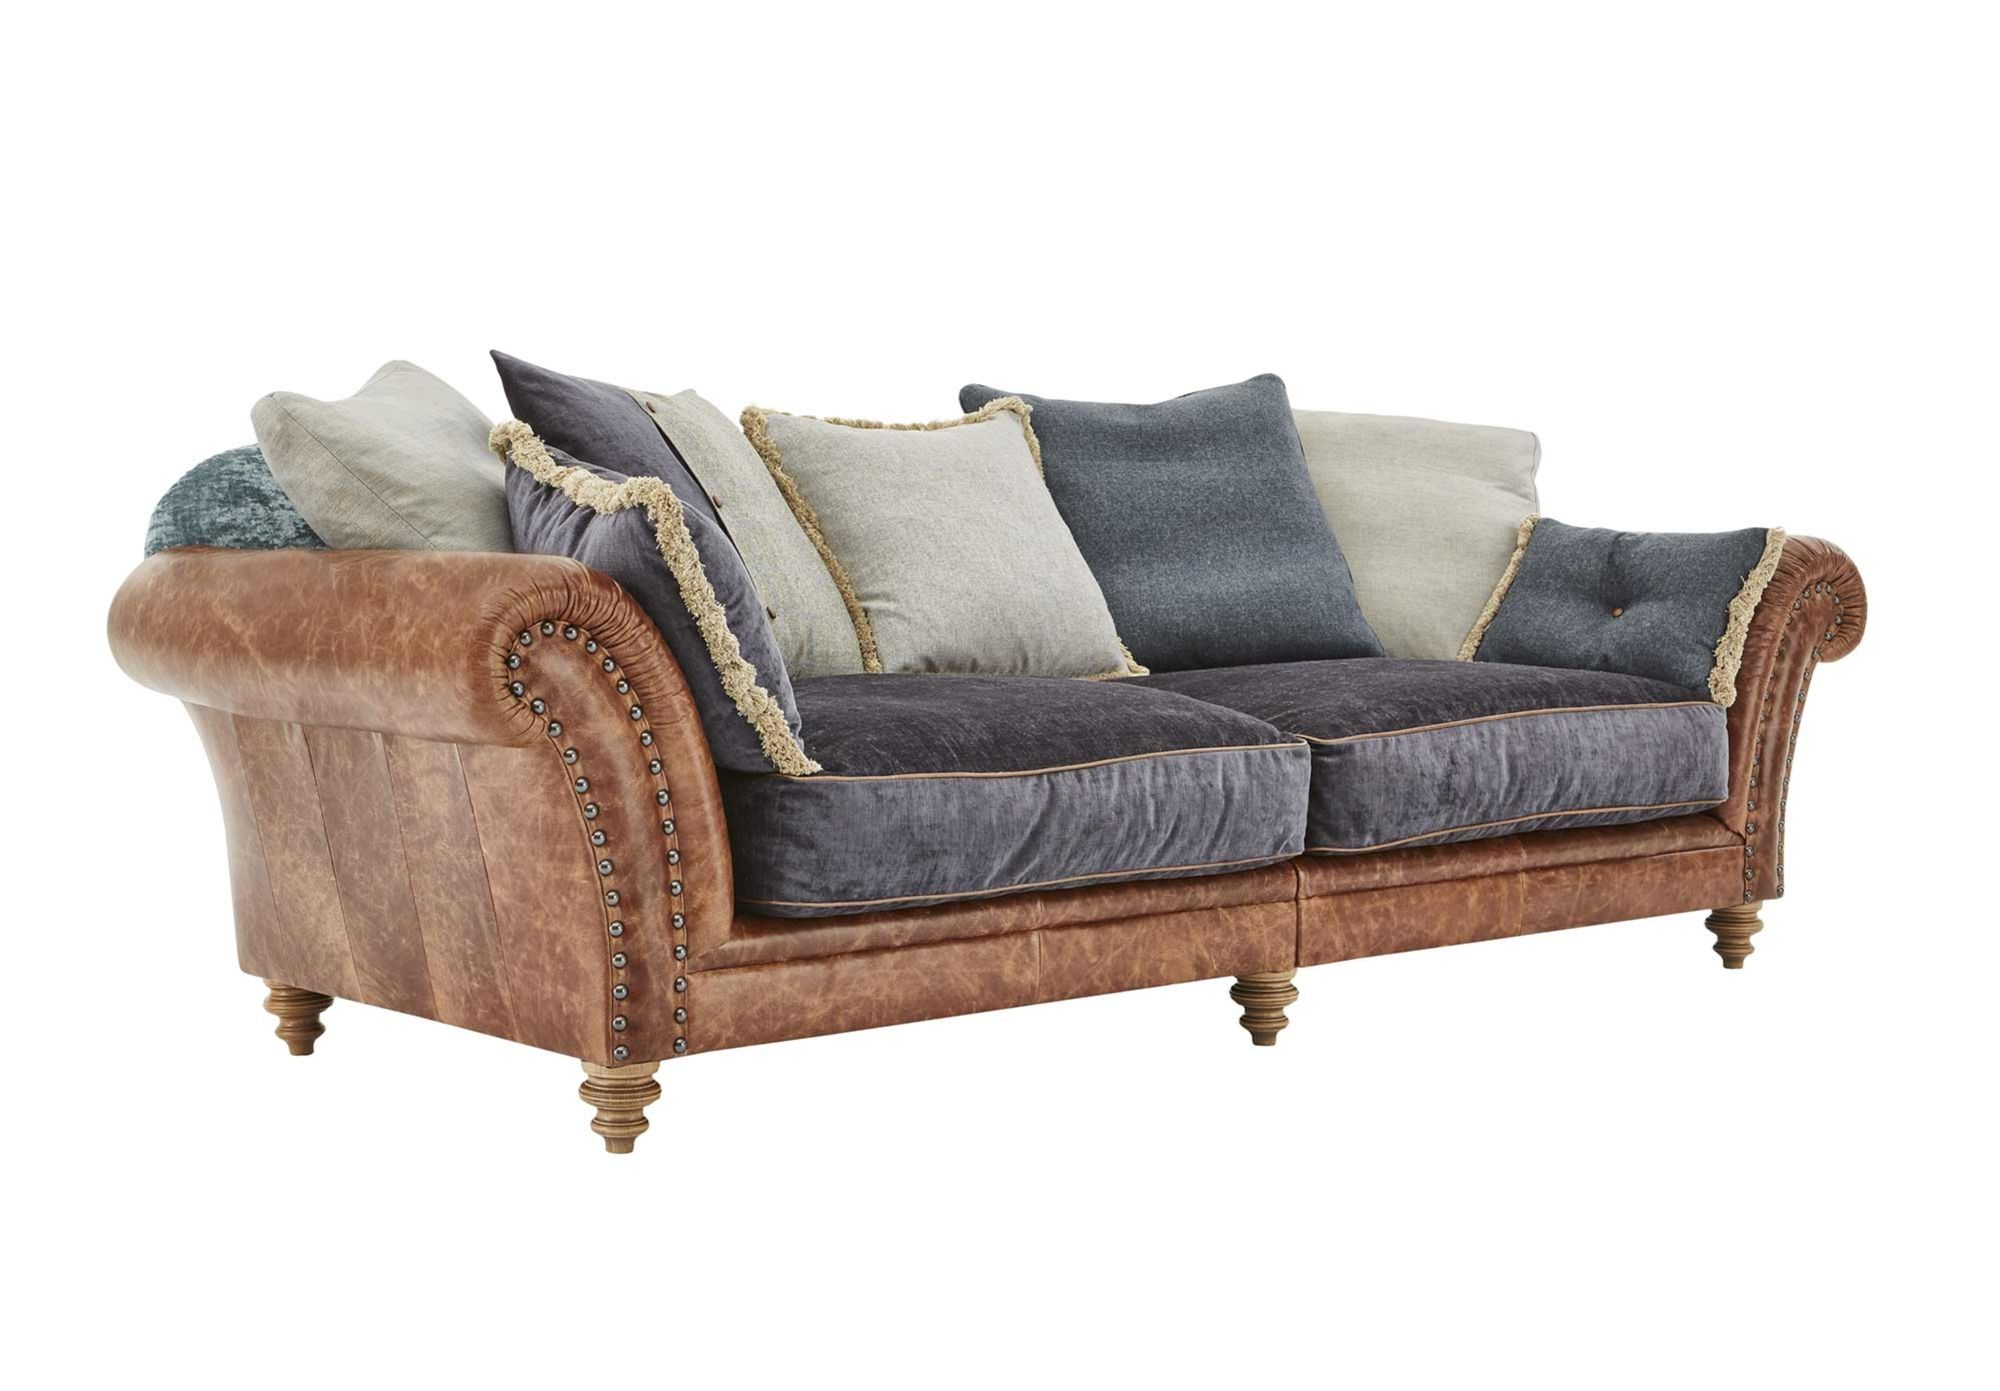 tetrad sofa furniture village low cost set in chennai 4 seater split frame leather westwood living room